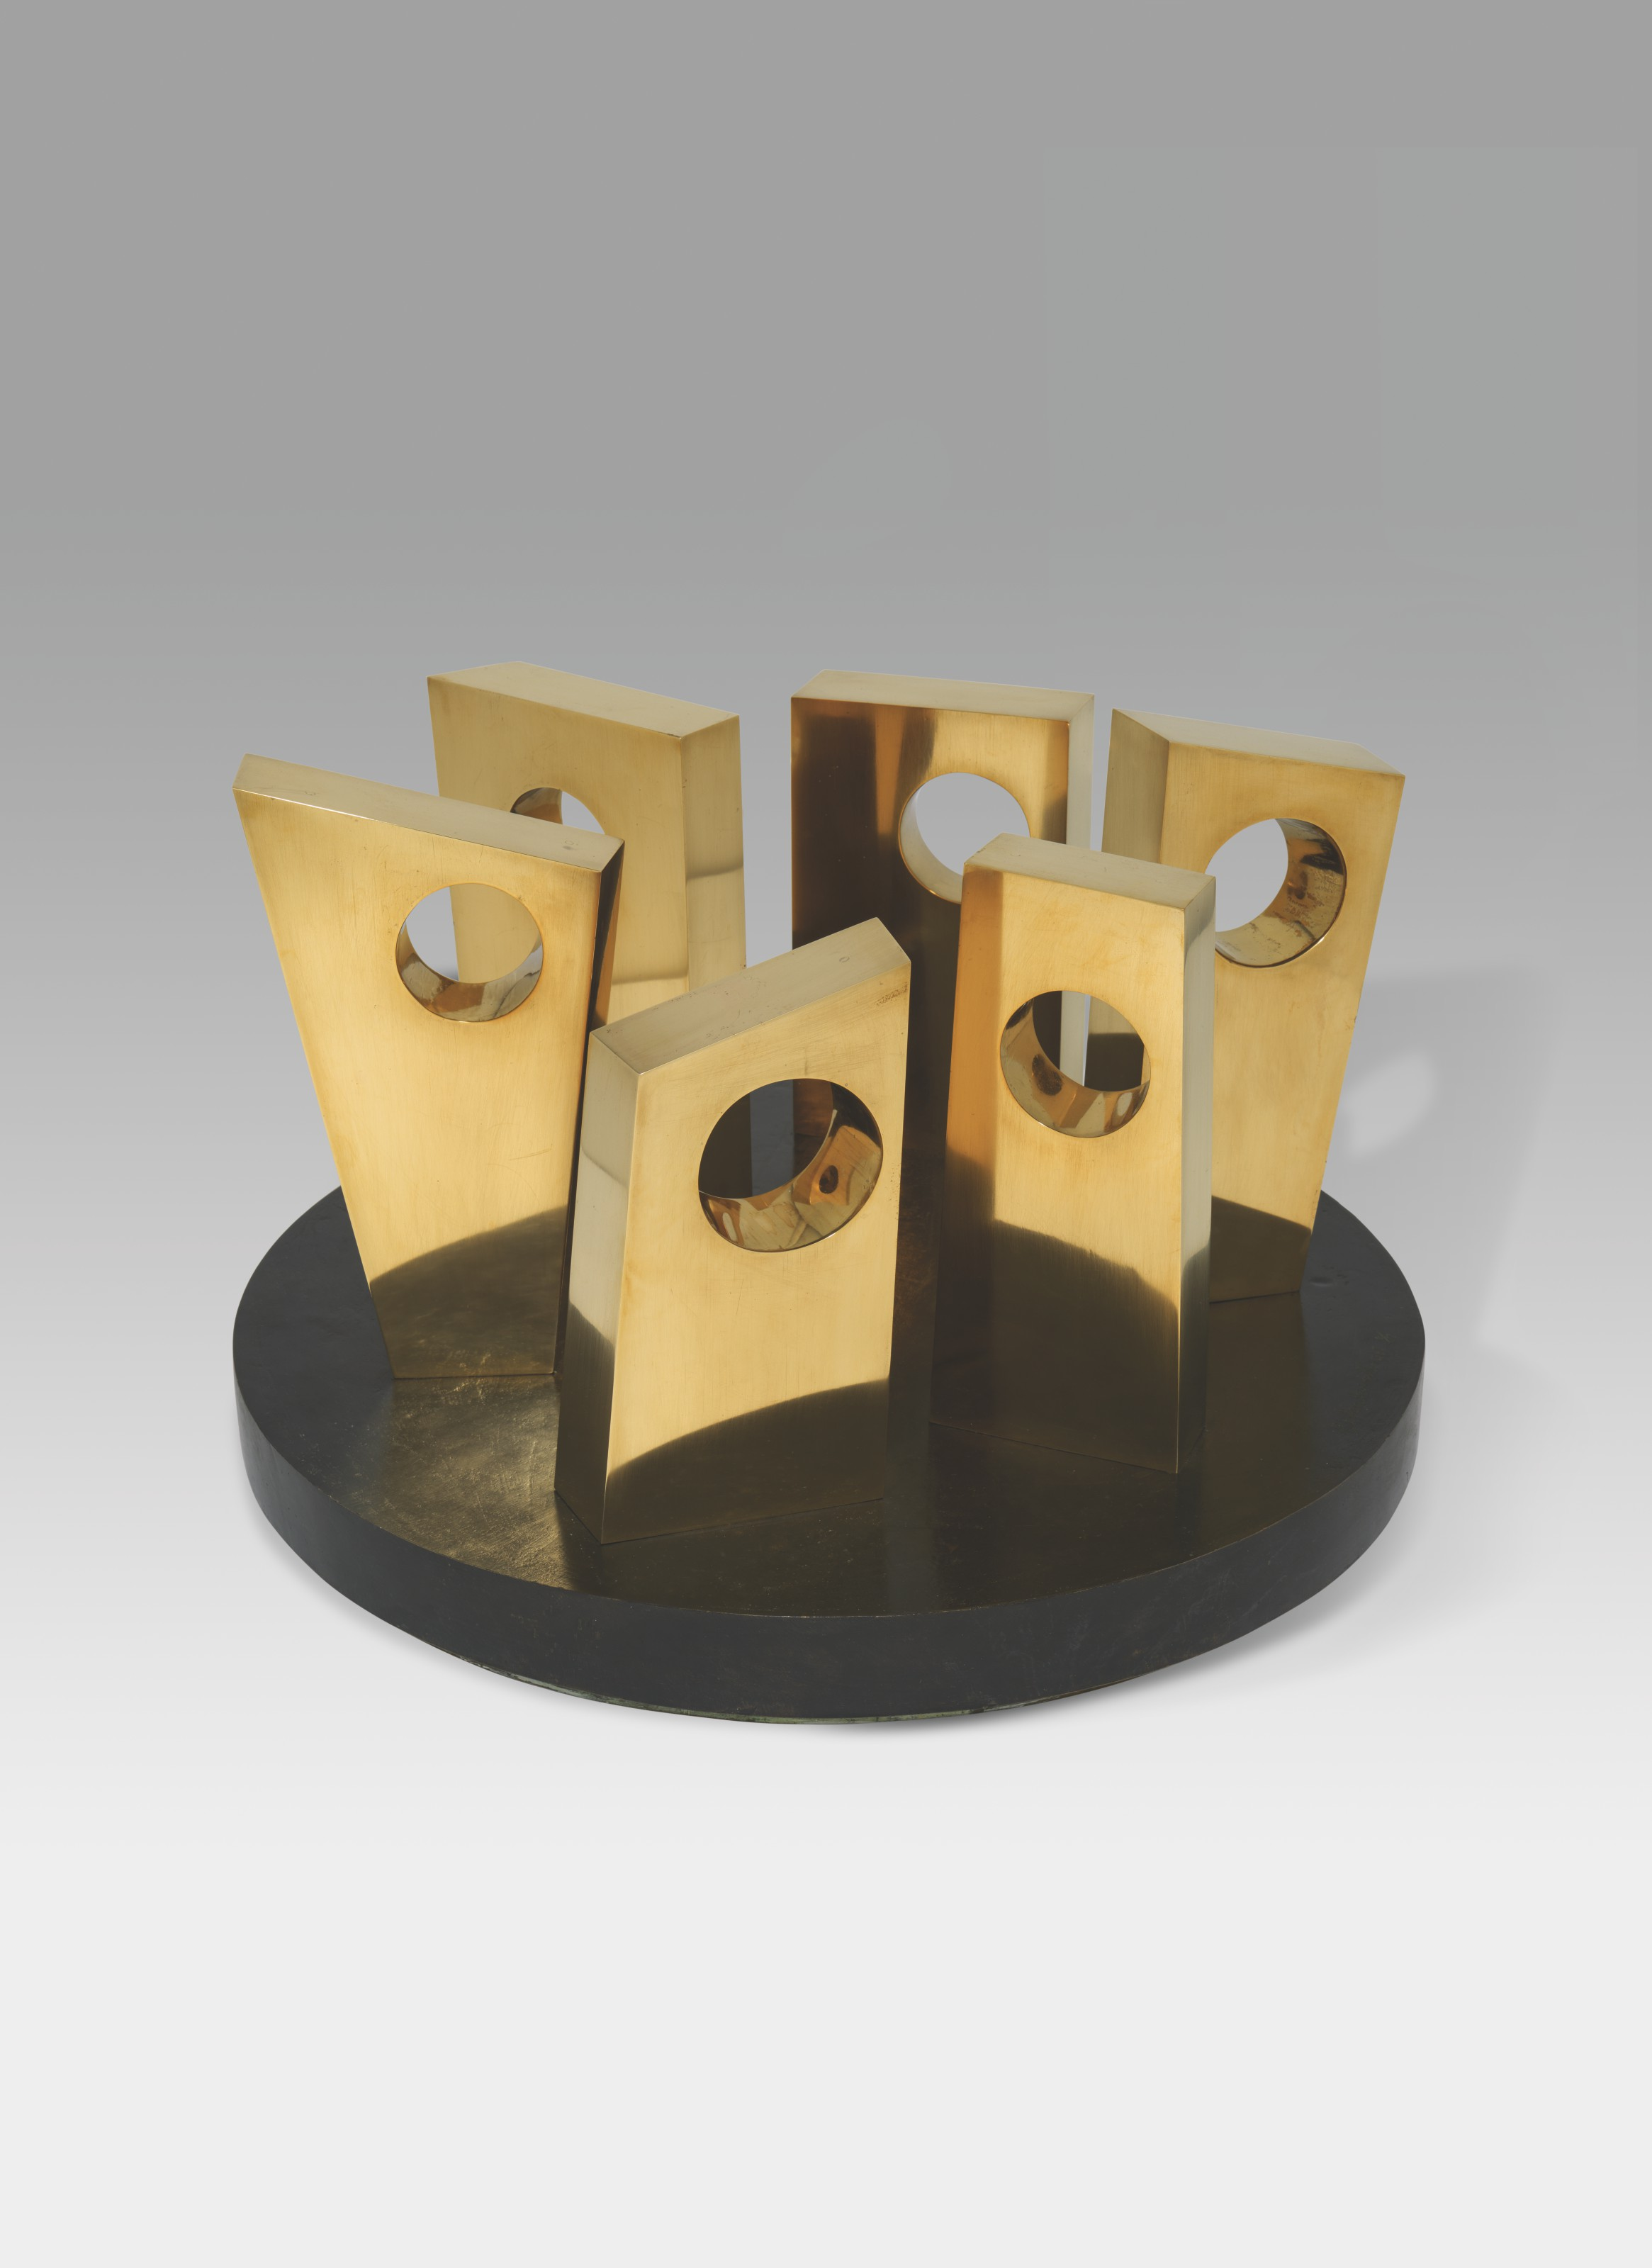 Dame Barbara Hepworth (1903-1975), Six forms on a circle, 1968. Polished bronze on a revolving base. 23¾  in (60.4  cm) wide, including revolving bronze base. Estimate £300,000-500,000. Offered inModern British and Irish Art Evening Saleon 20 October 2021 at Christie's in London